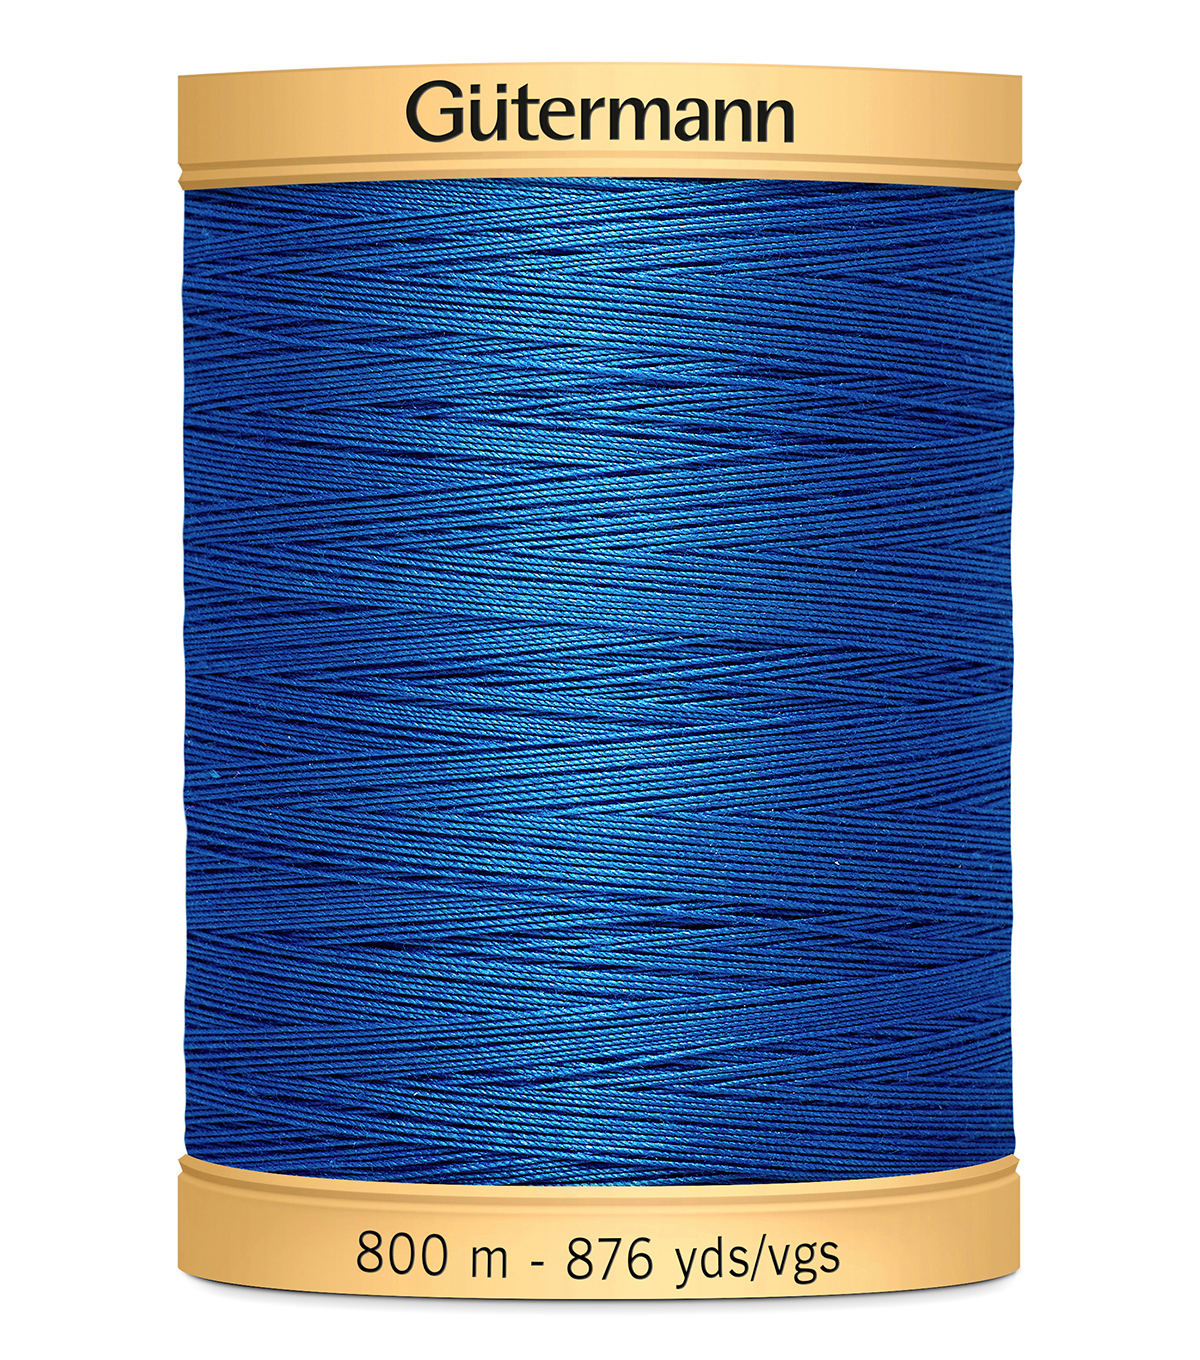 Gutermann Natural Cotton Thread Solids 876 yd, Royal Blue